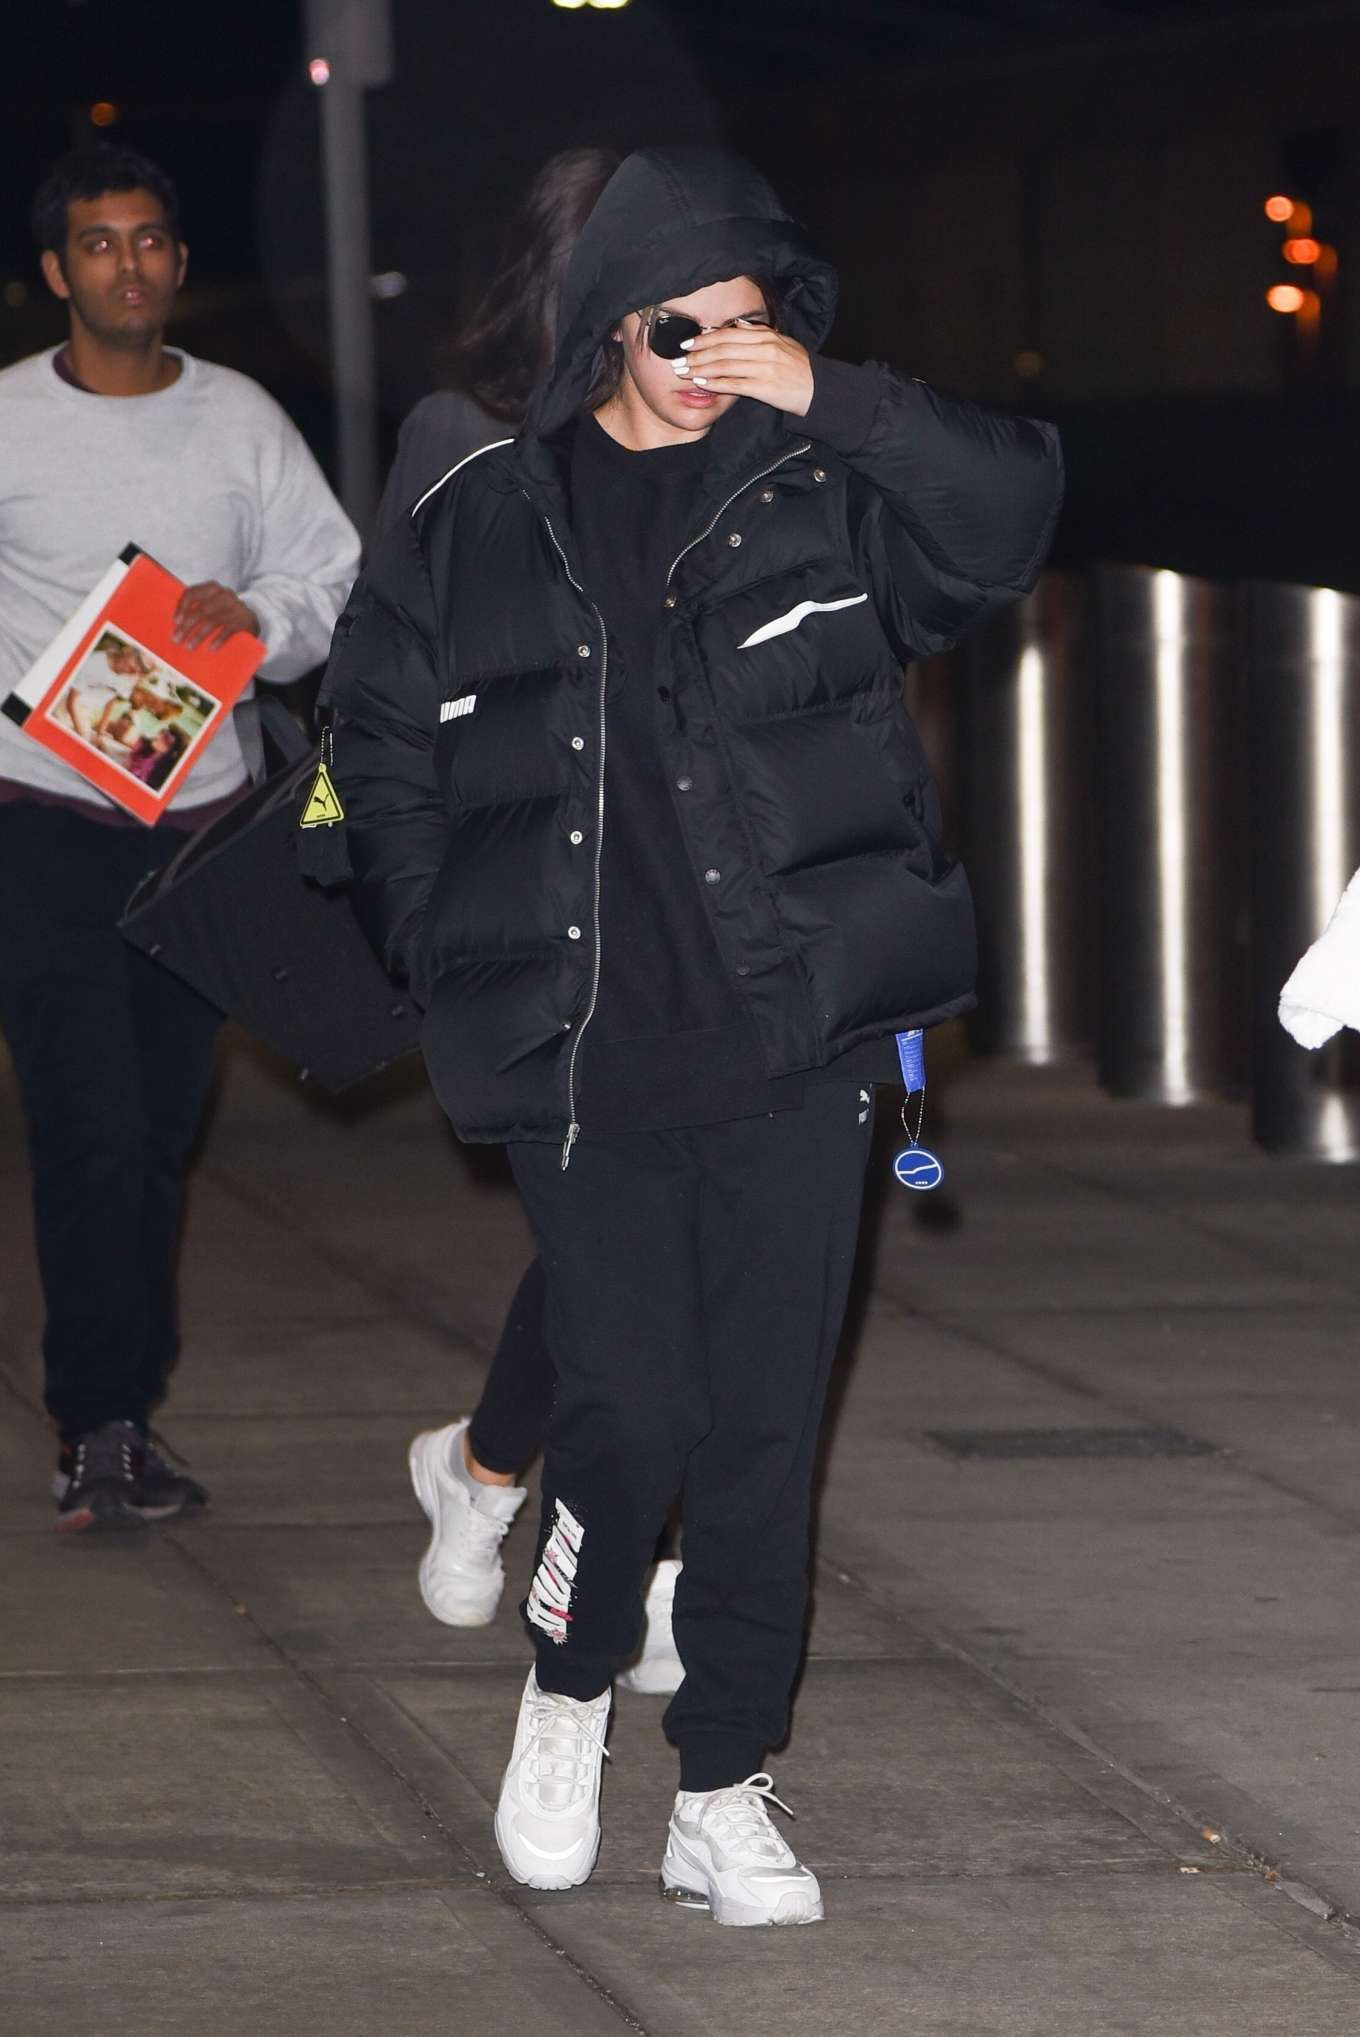 Selena Gomez, Puma  jacket, black  jacket, nylon, black hoodie, white Puma sneakers, front zip, hip length, extra long sleeves, oversized, black sunglasses, concealed button